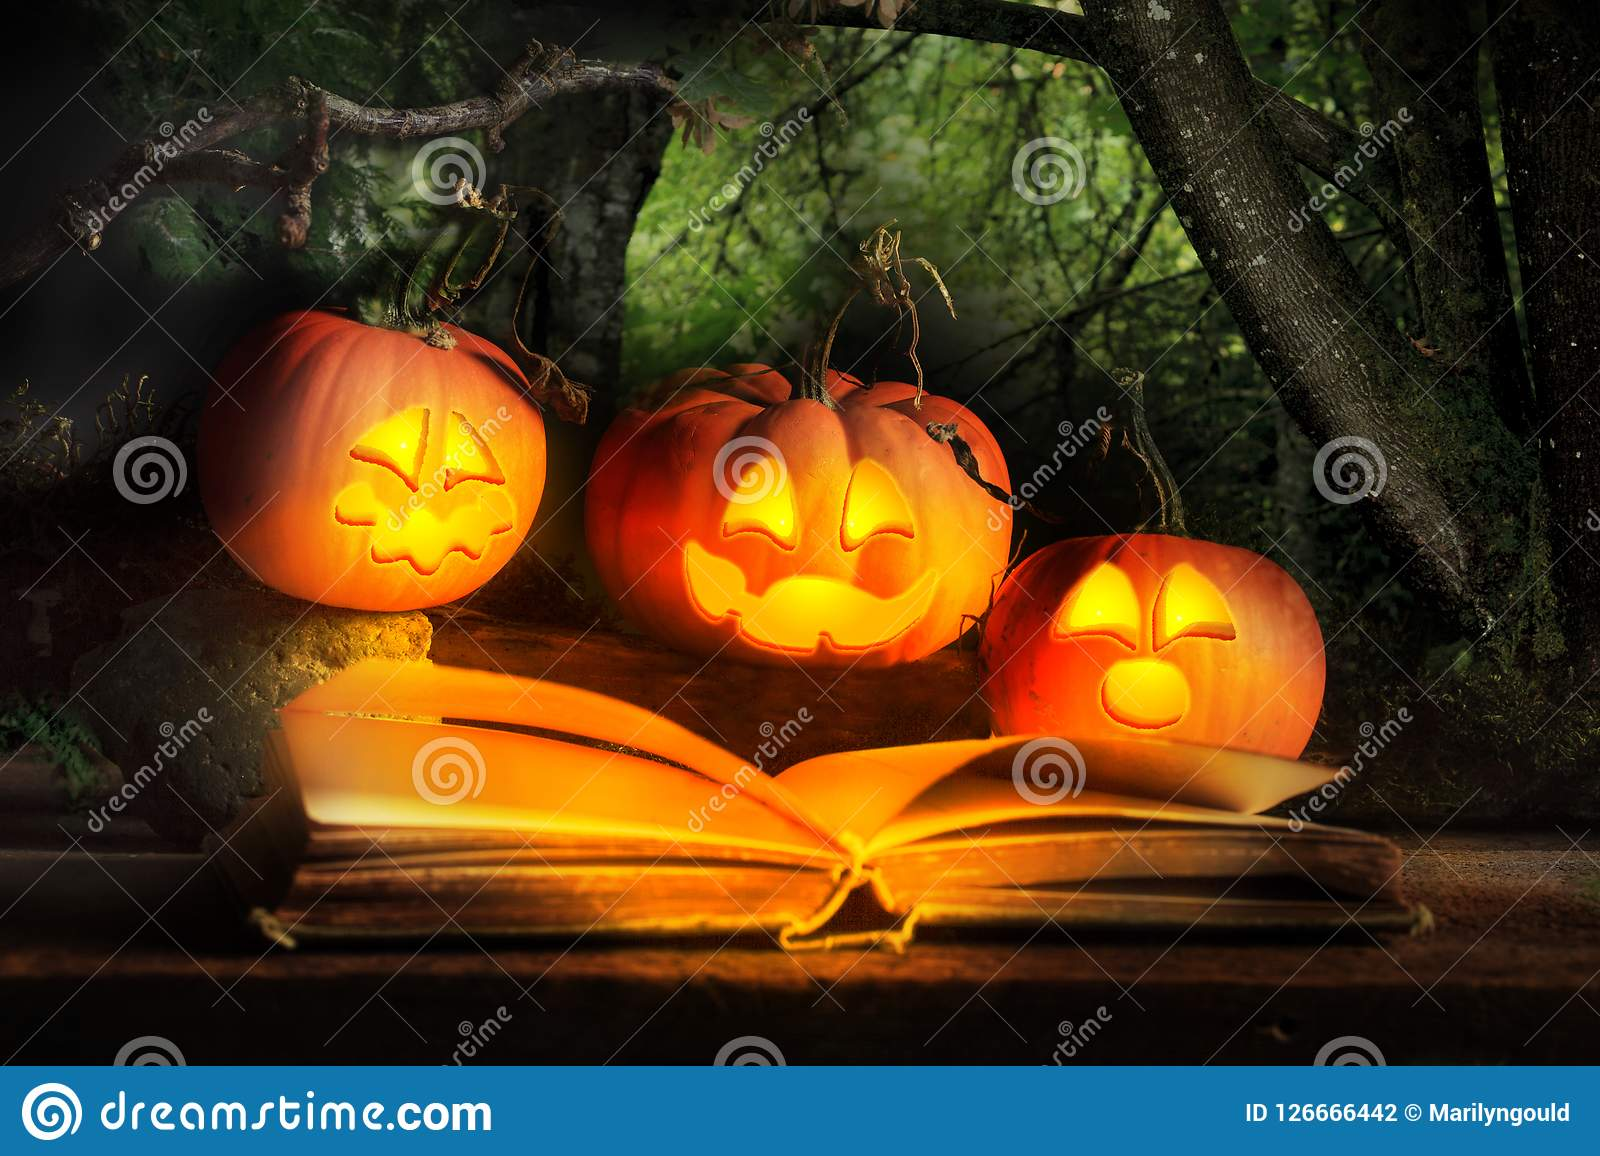 Halloween Jack O Lanterns Reading Scary Story Stock Photo